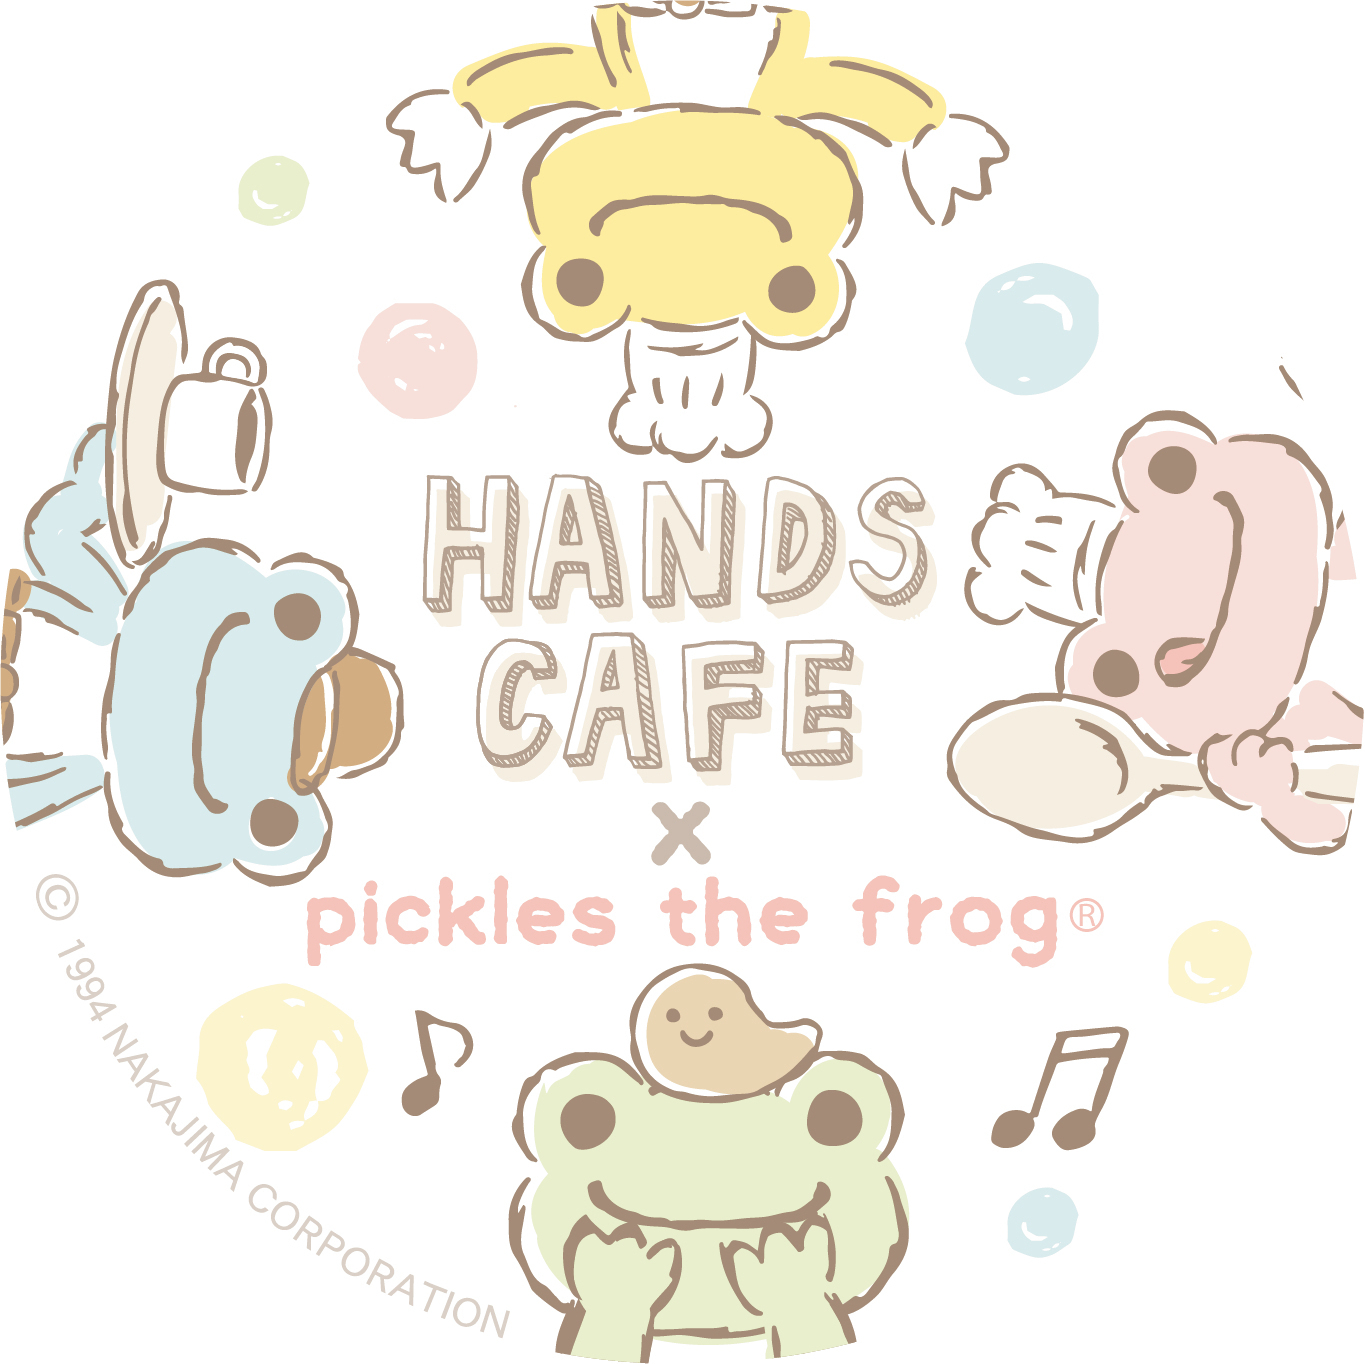 pickles-the-frog-hands-cafe10